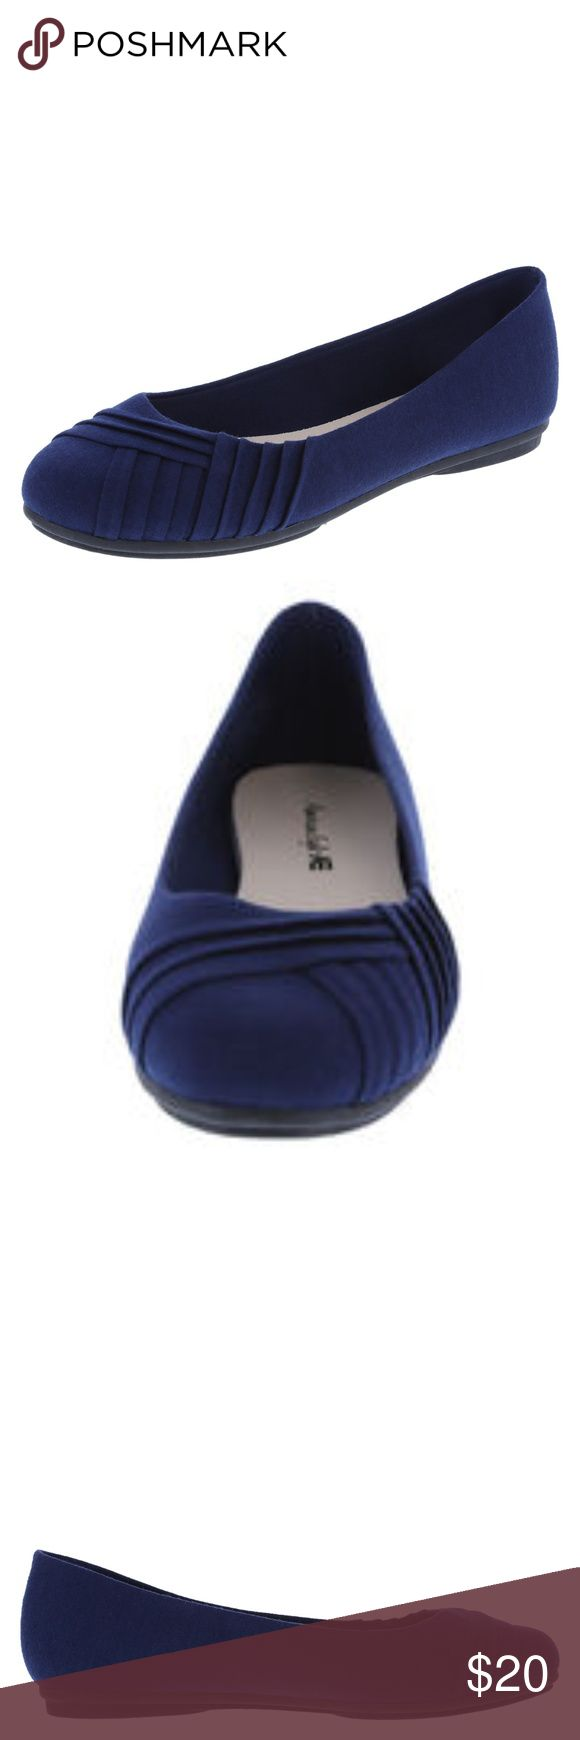 American Eagle Women's Bree Pleated Flat Shoe 9.5W American Eagle (by Payless) Women's Bree Pleated Flat Shoes in Navy. Size 9.5W. Wide Width.   Dress up your office attire with this pretty and practical staple from American Eagle. The Bree Flat features a soft fabric upper, classic round toe with pleated details, jersey lining, padded insole, and a durable outsole. Manmade materials  Brand new in Box! American Eagle By Payless Shoes Flats & Loafers